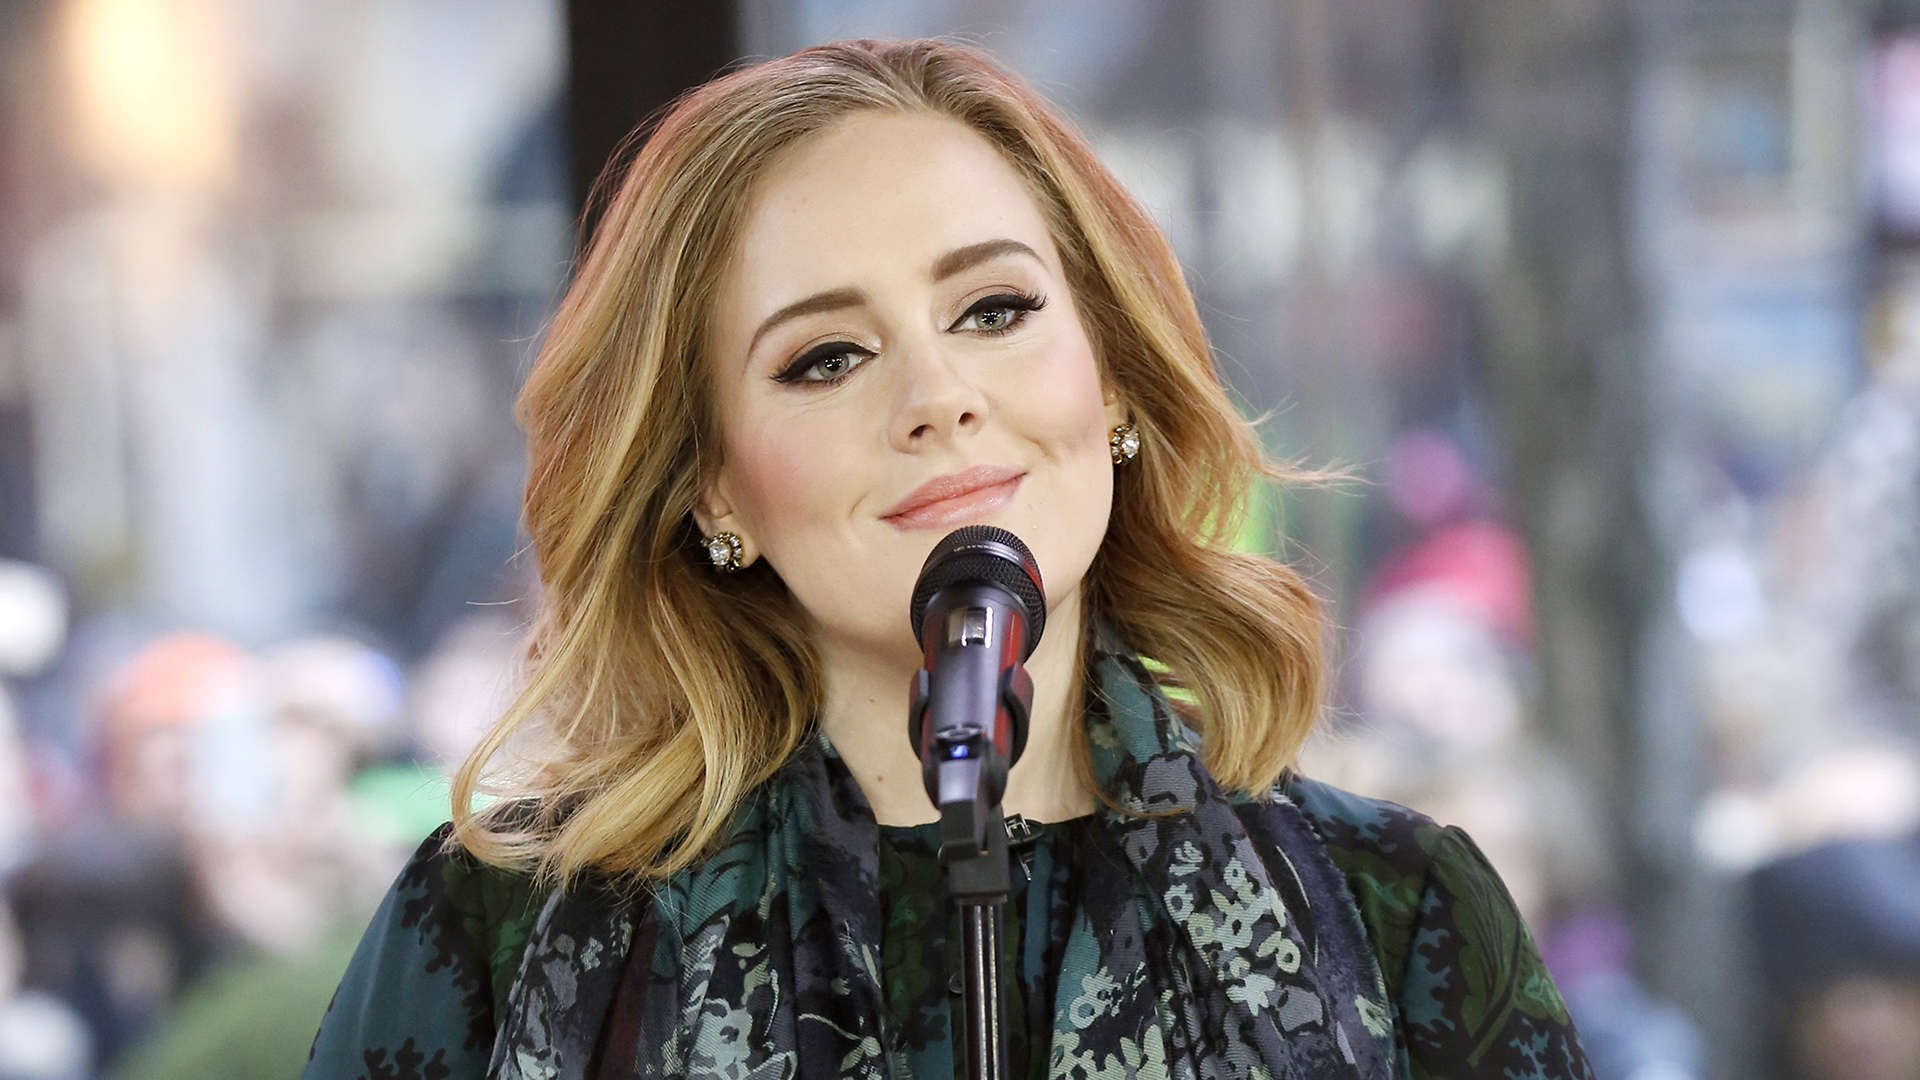 Ultra HD K Adele Wallpapers HD, Desktop Backgrounds  1920x1080